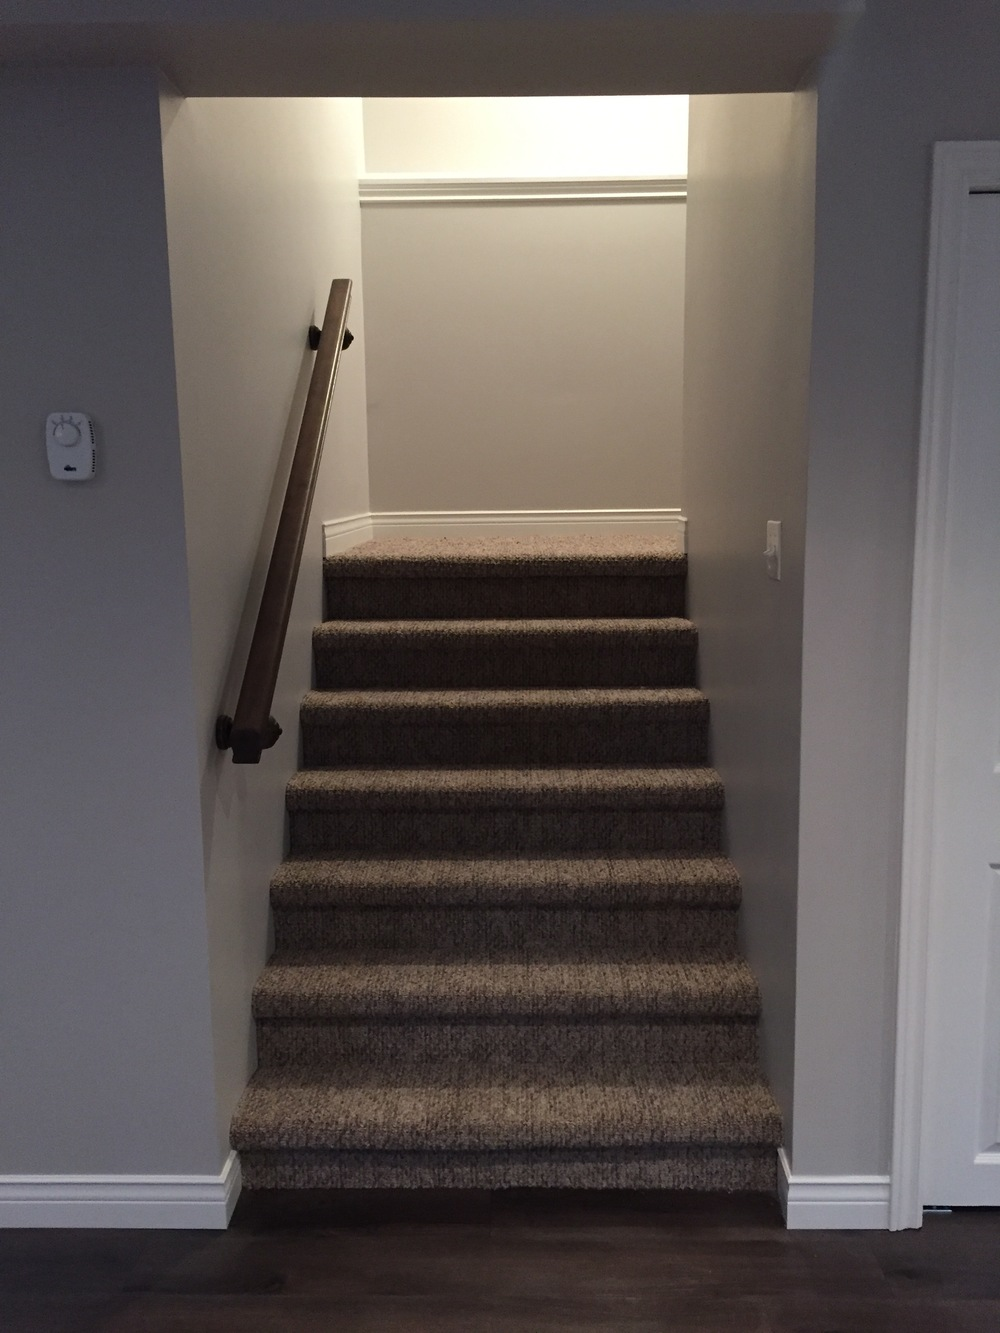 Carpeted stairs to main floor.